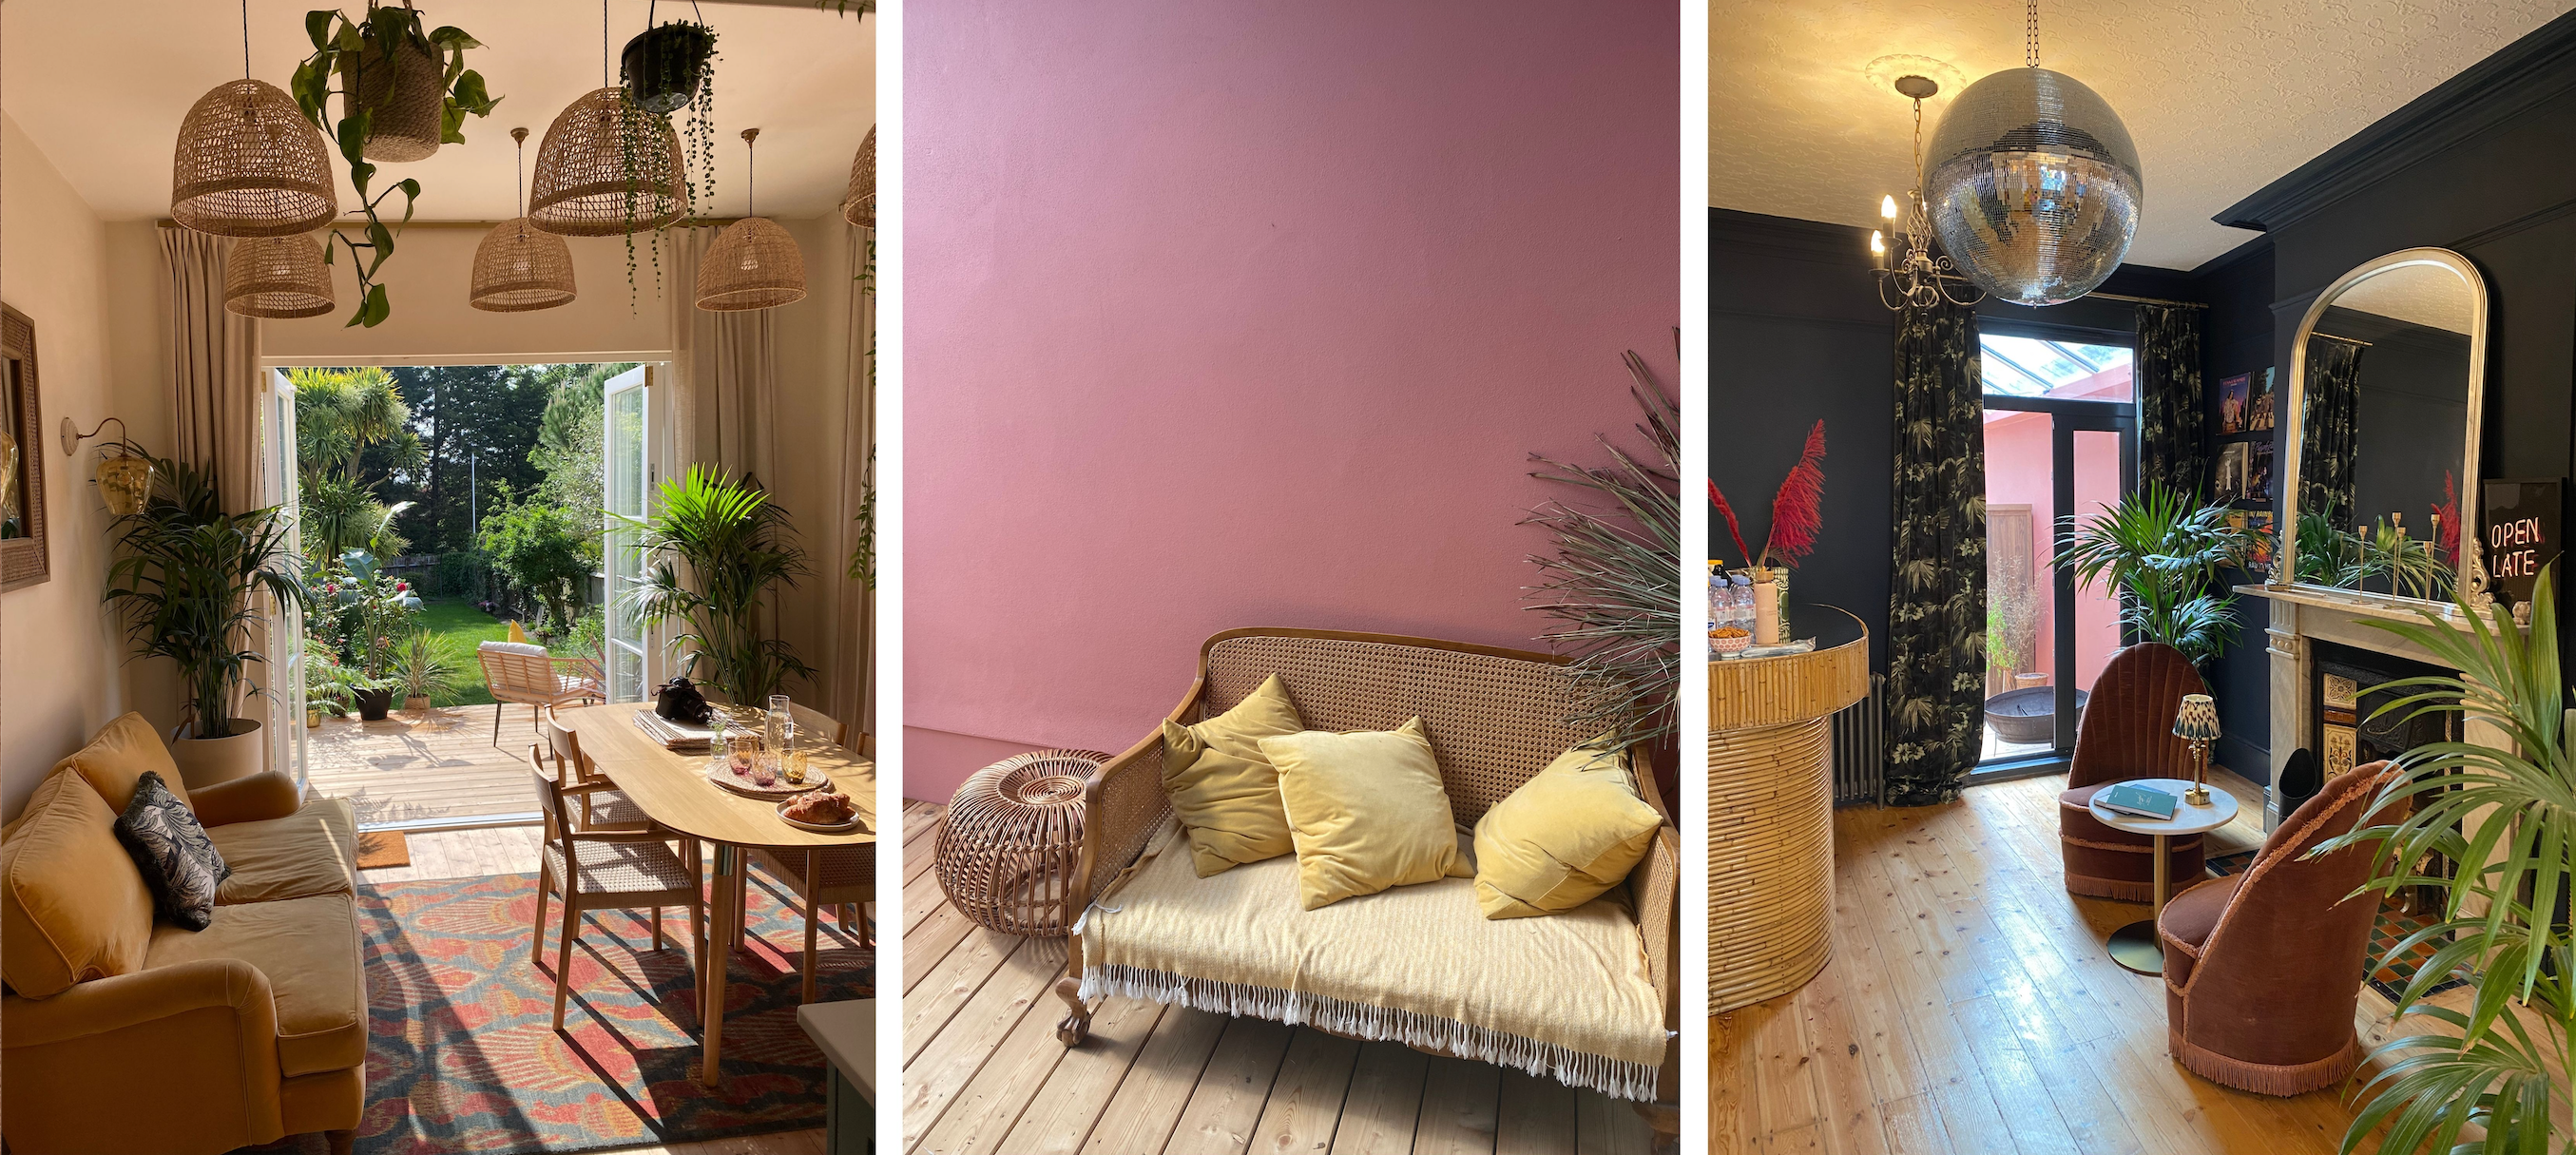 collage of photos showing the interior at The Palm